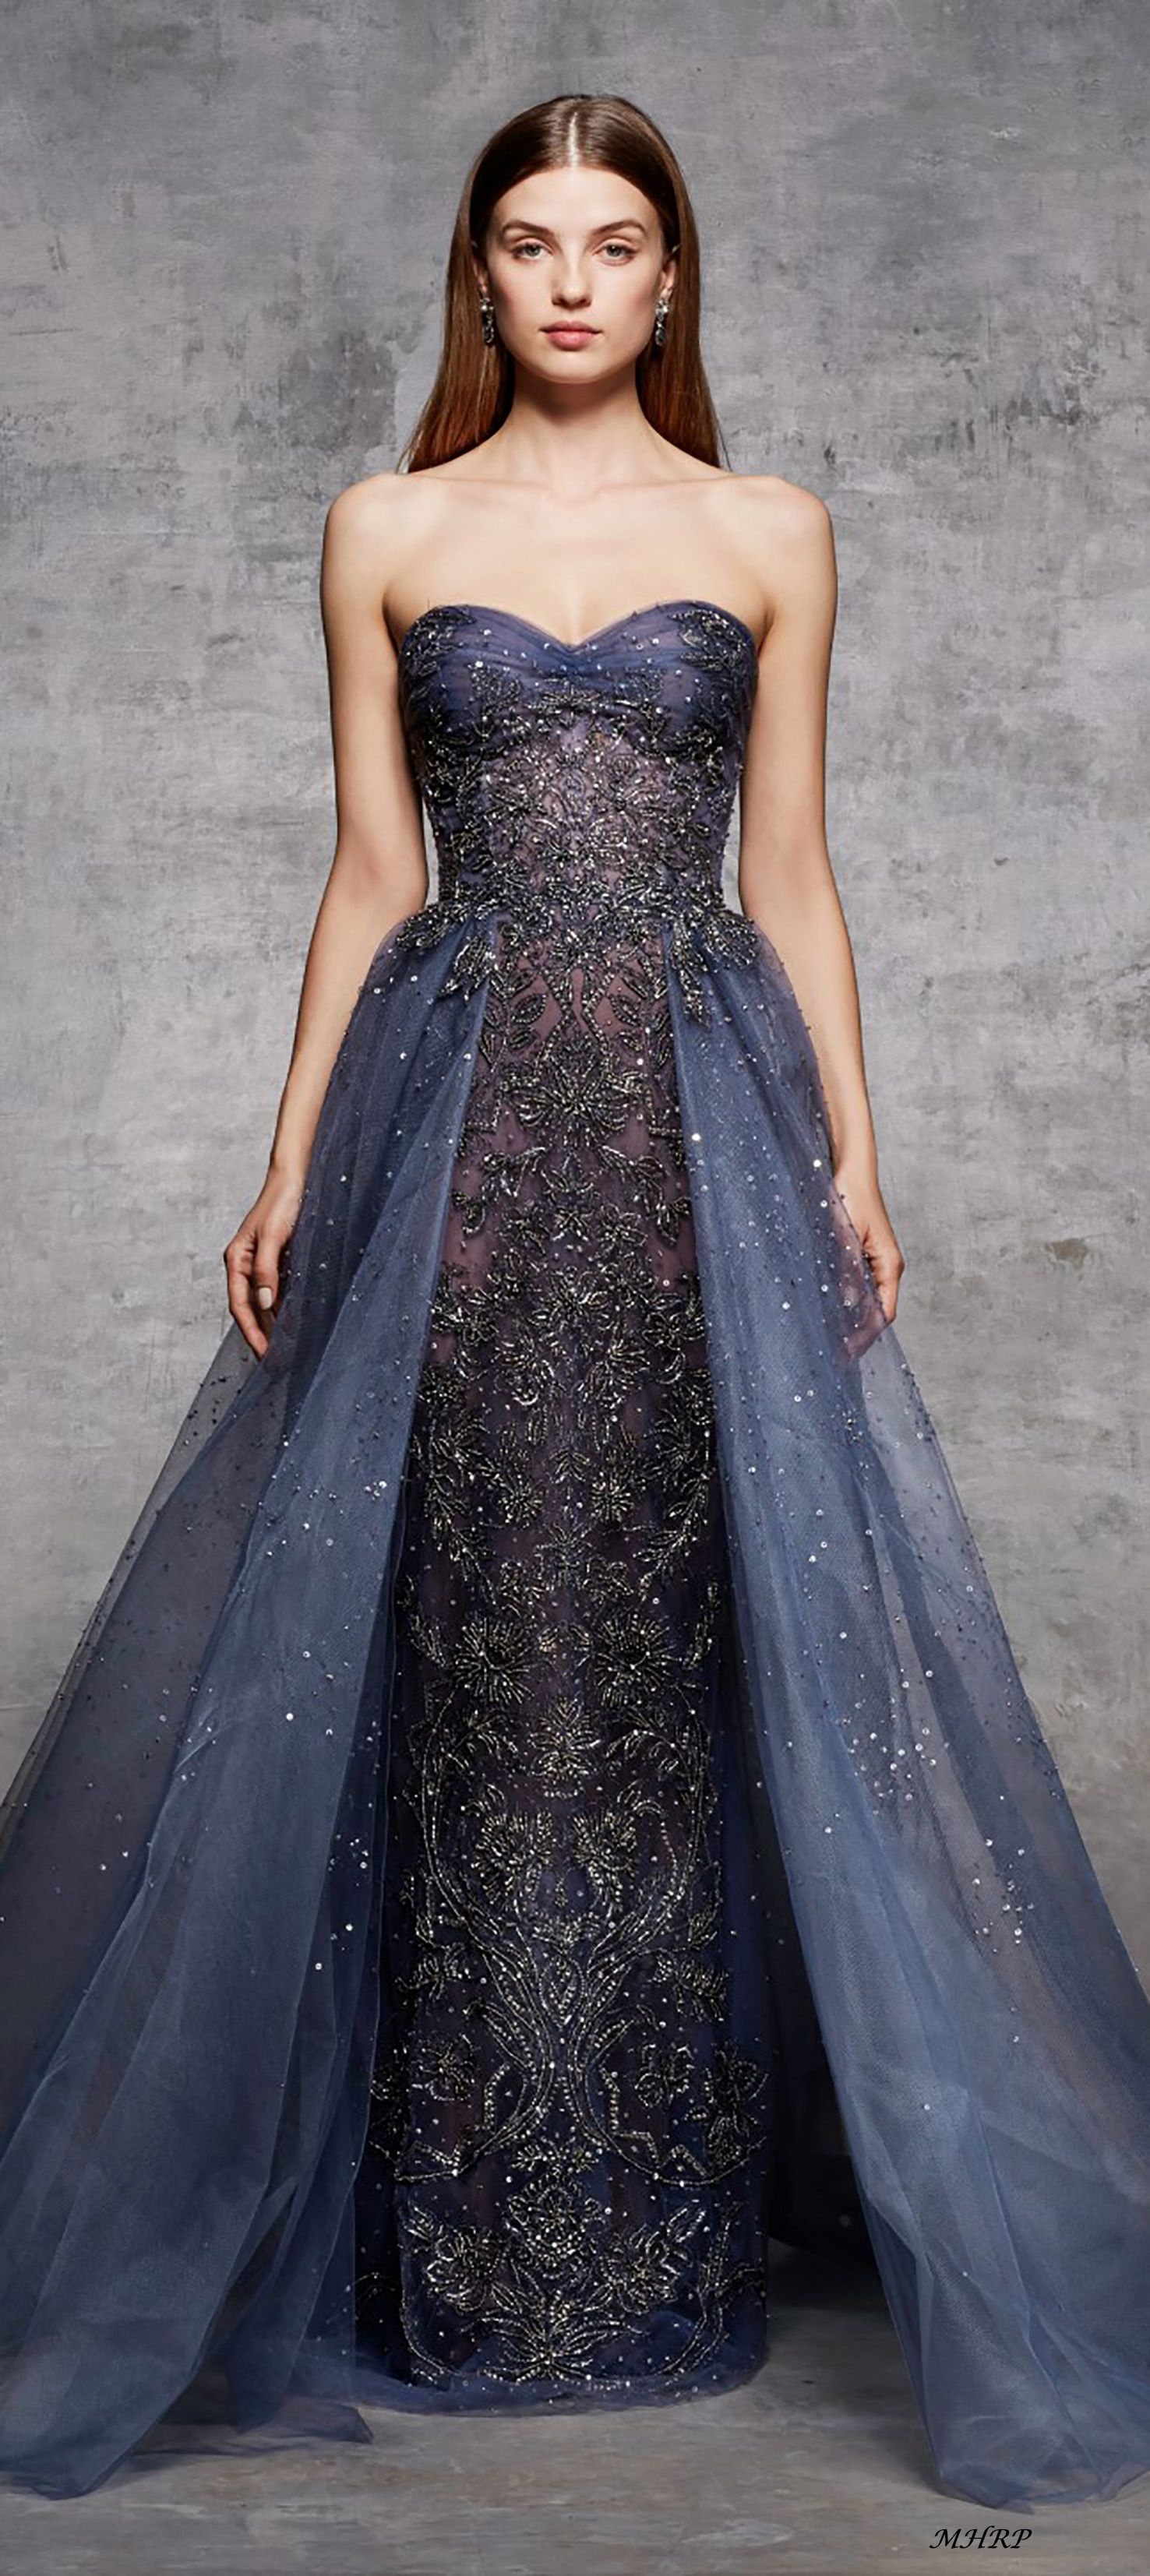 93856a4b147 Marchesa Pre-Fall 2018 - image pinned from marchesa.com